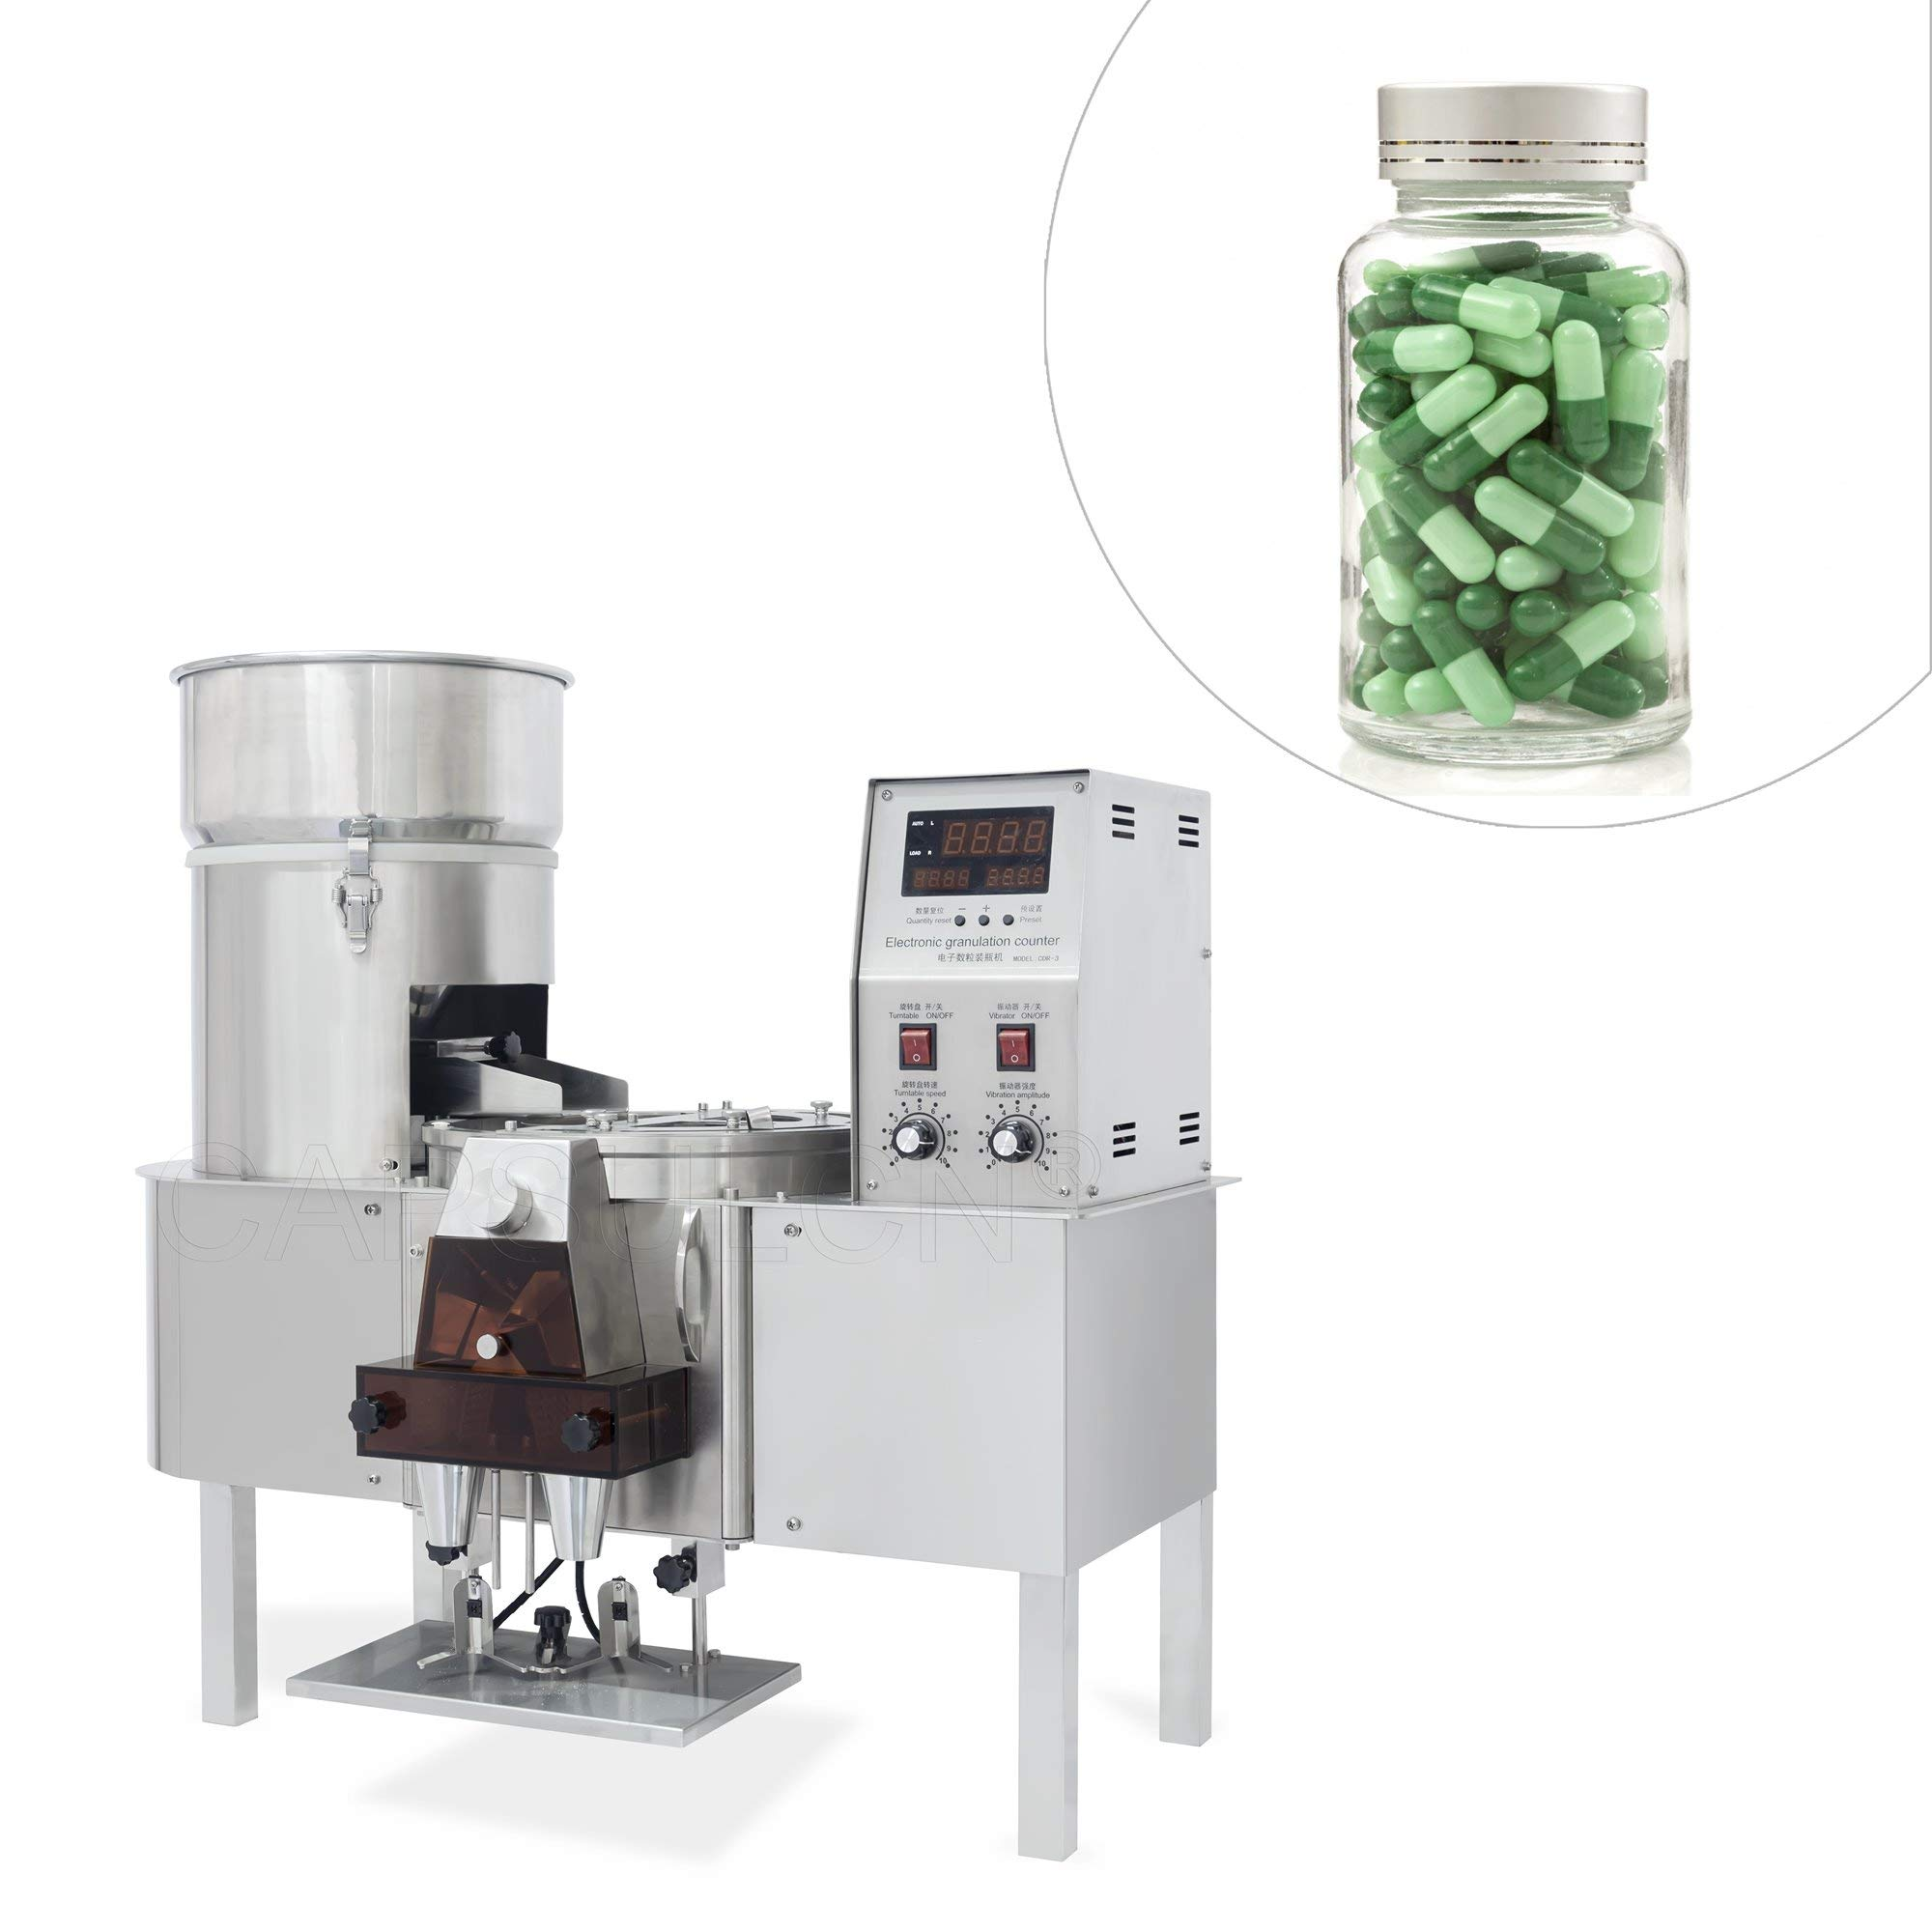 110V/60Hz CDR-3A Automatic Capsule/Tablet Counting Machine Capsule Counter